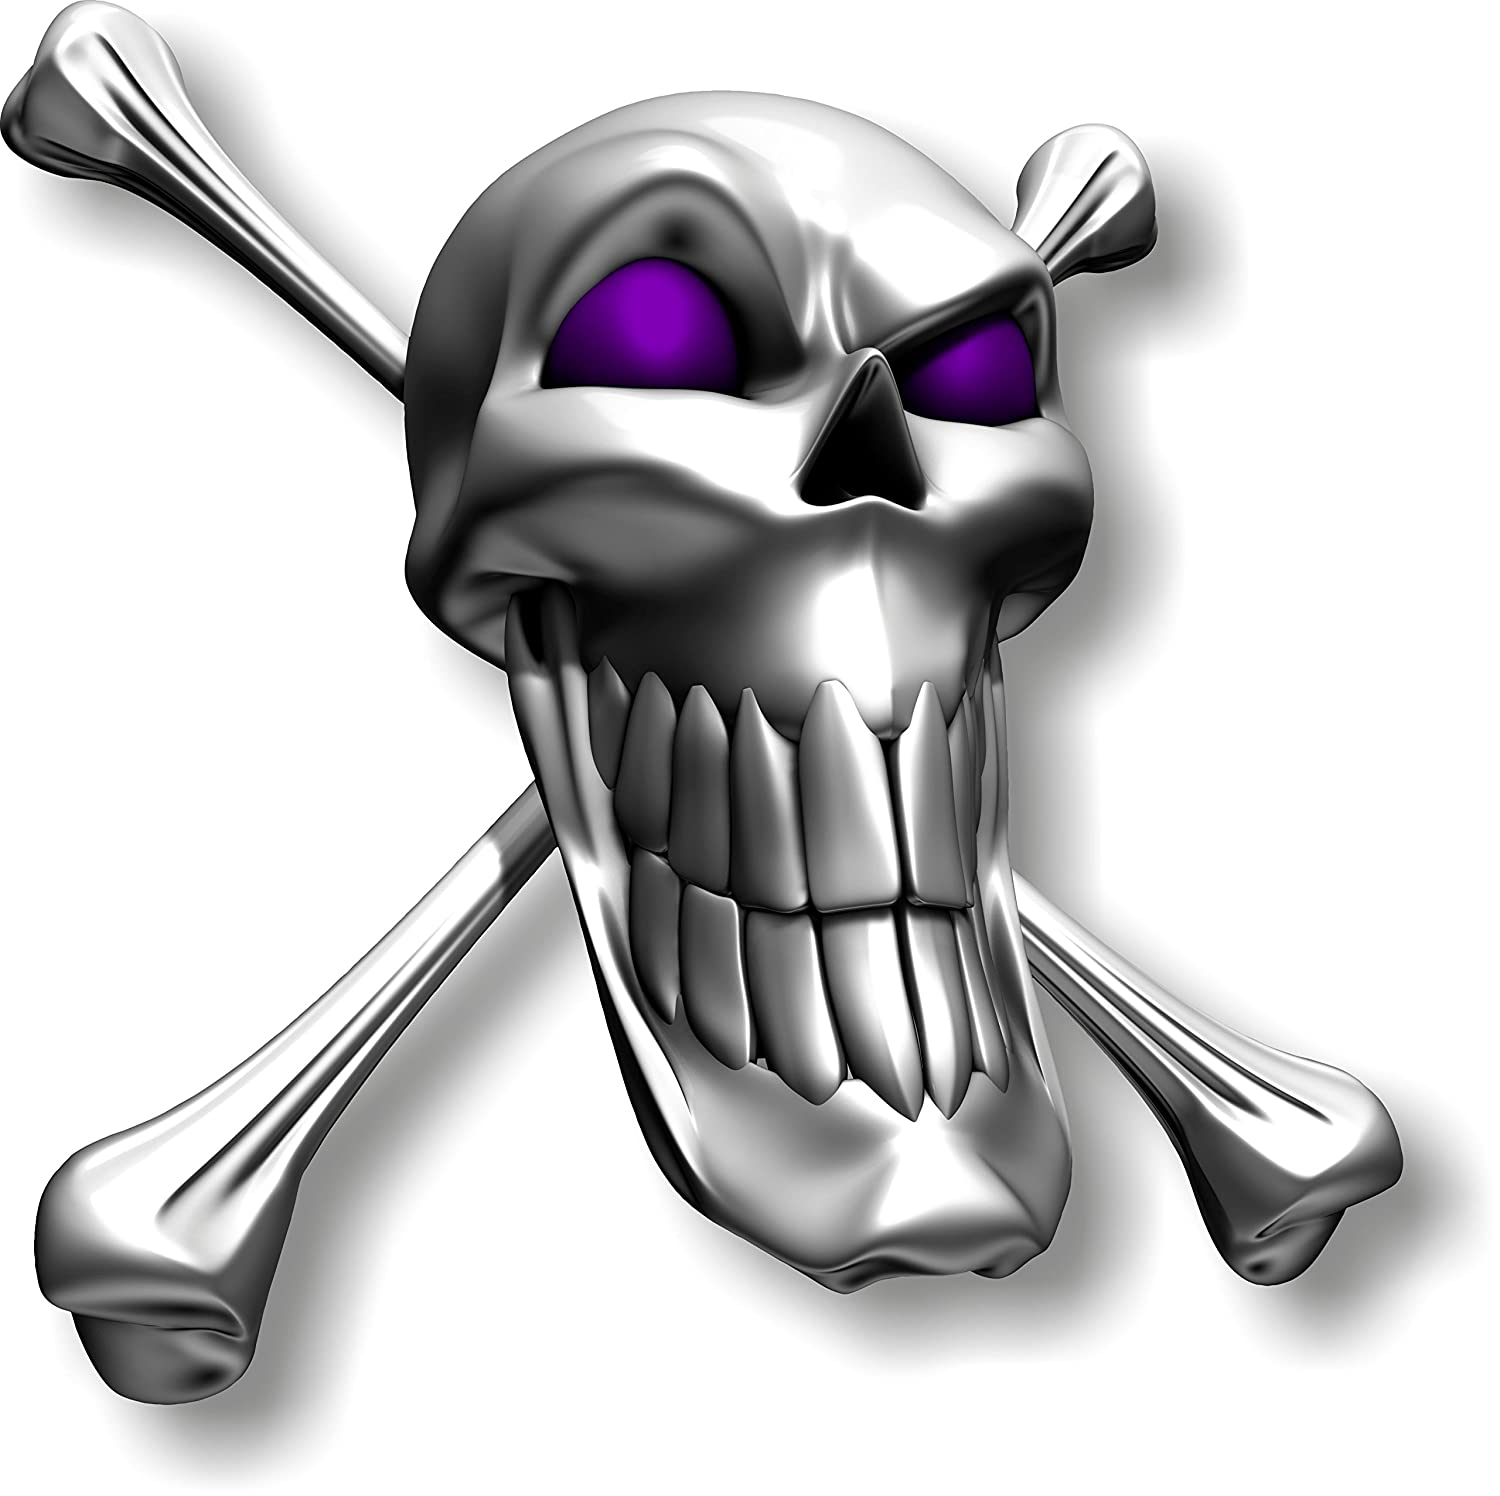 Vinyl sticker/decal Extra large 230mm long smile skull with purple eyes - facing right Graphic Effects